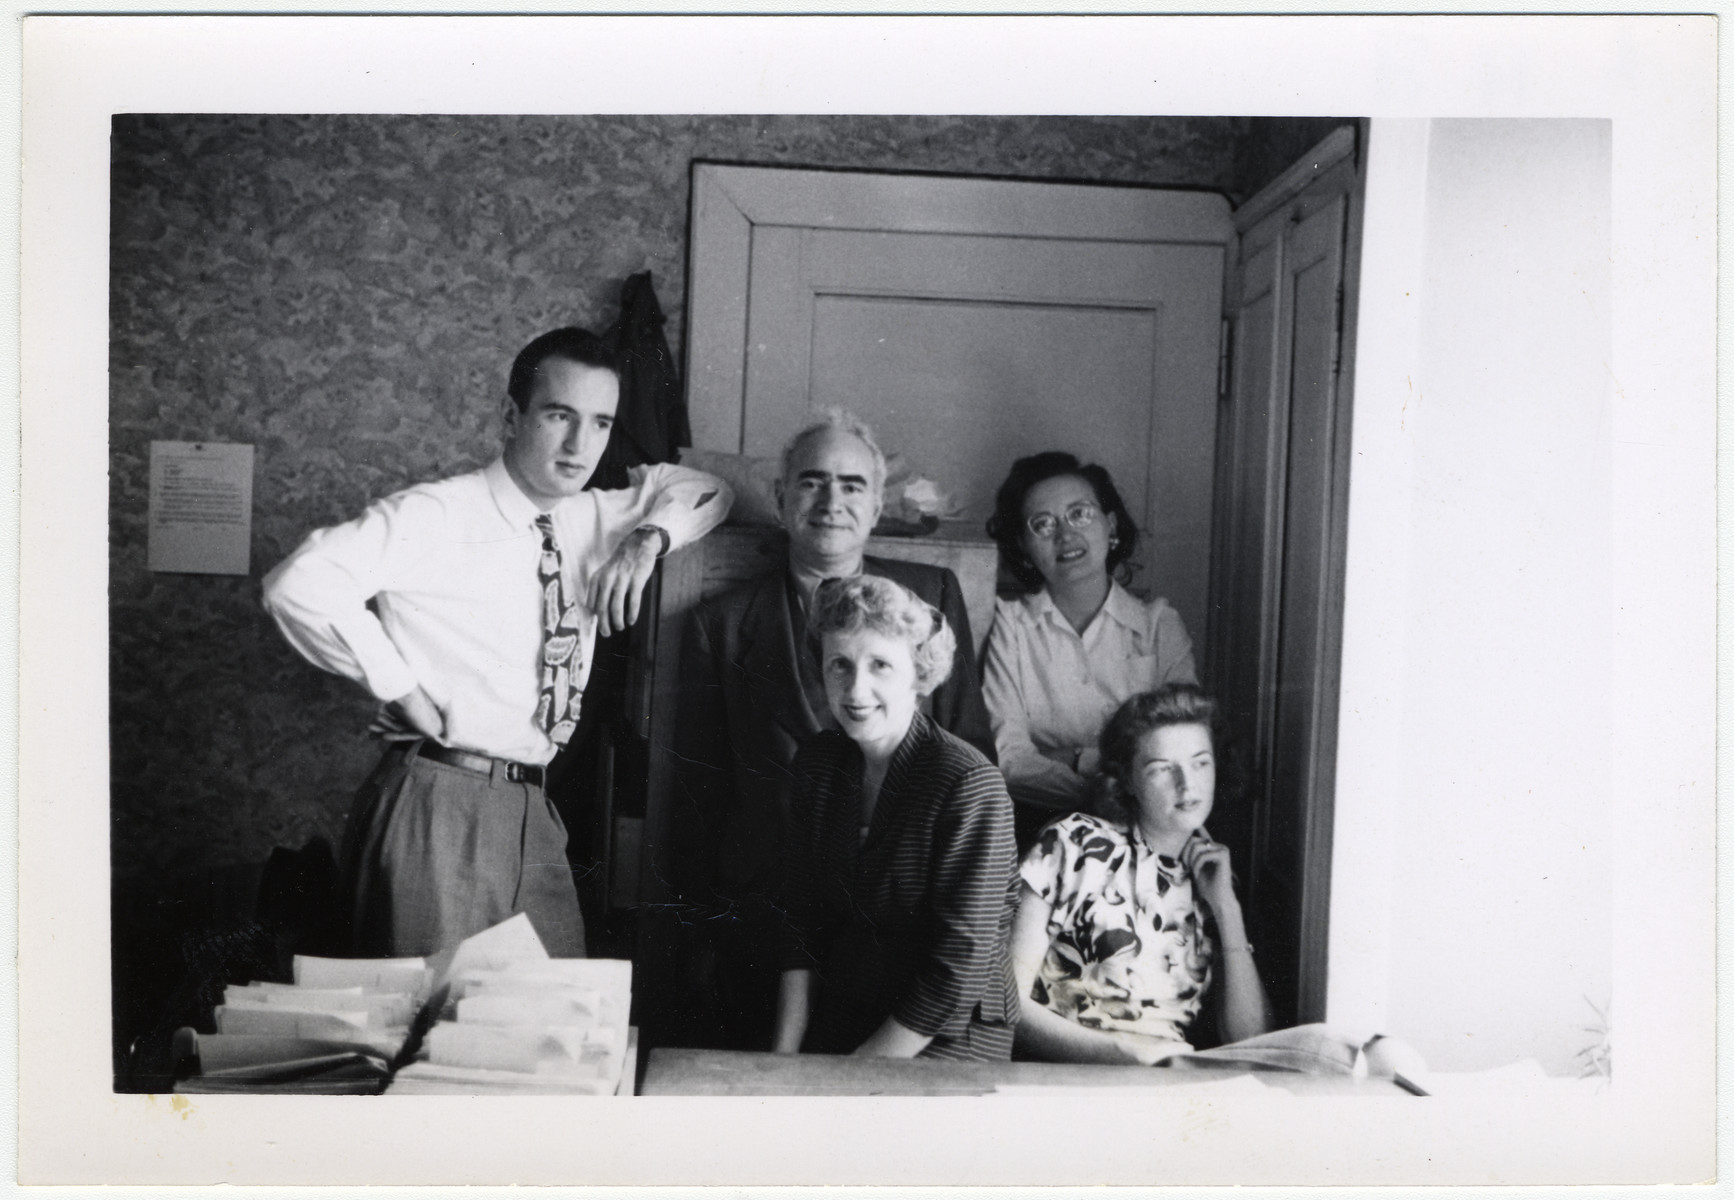 Maurice Levitt, a member of the Frankfurt Jewish GI Council, and four members of his staff work in their office in Bad Nauheim.  Maurice Levitt is standing in the center.  Else Jordan is in front of him.